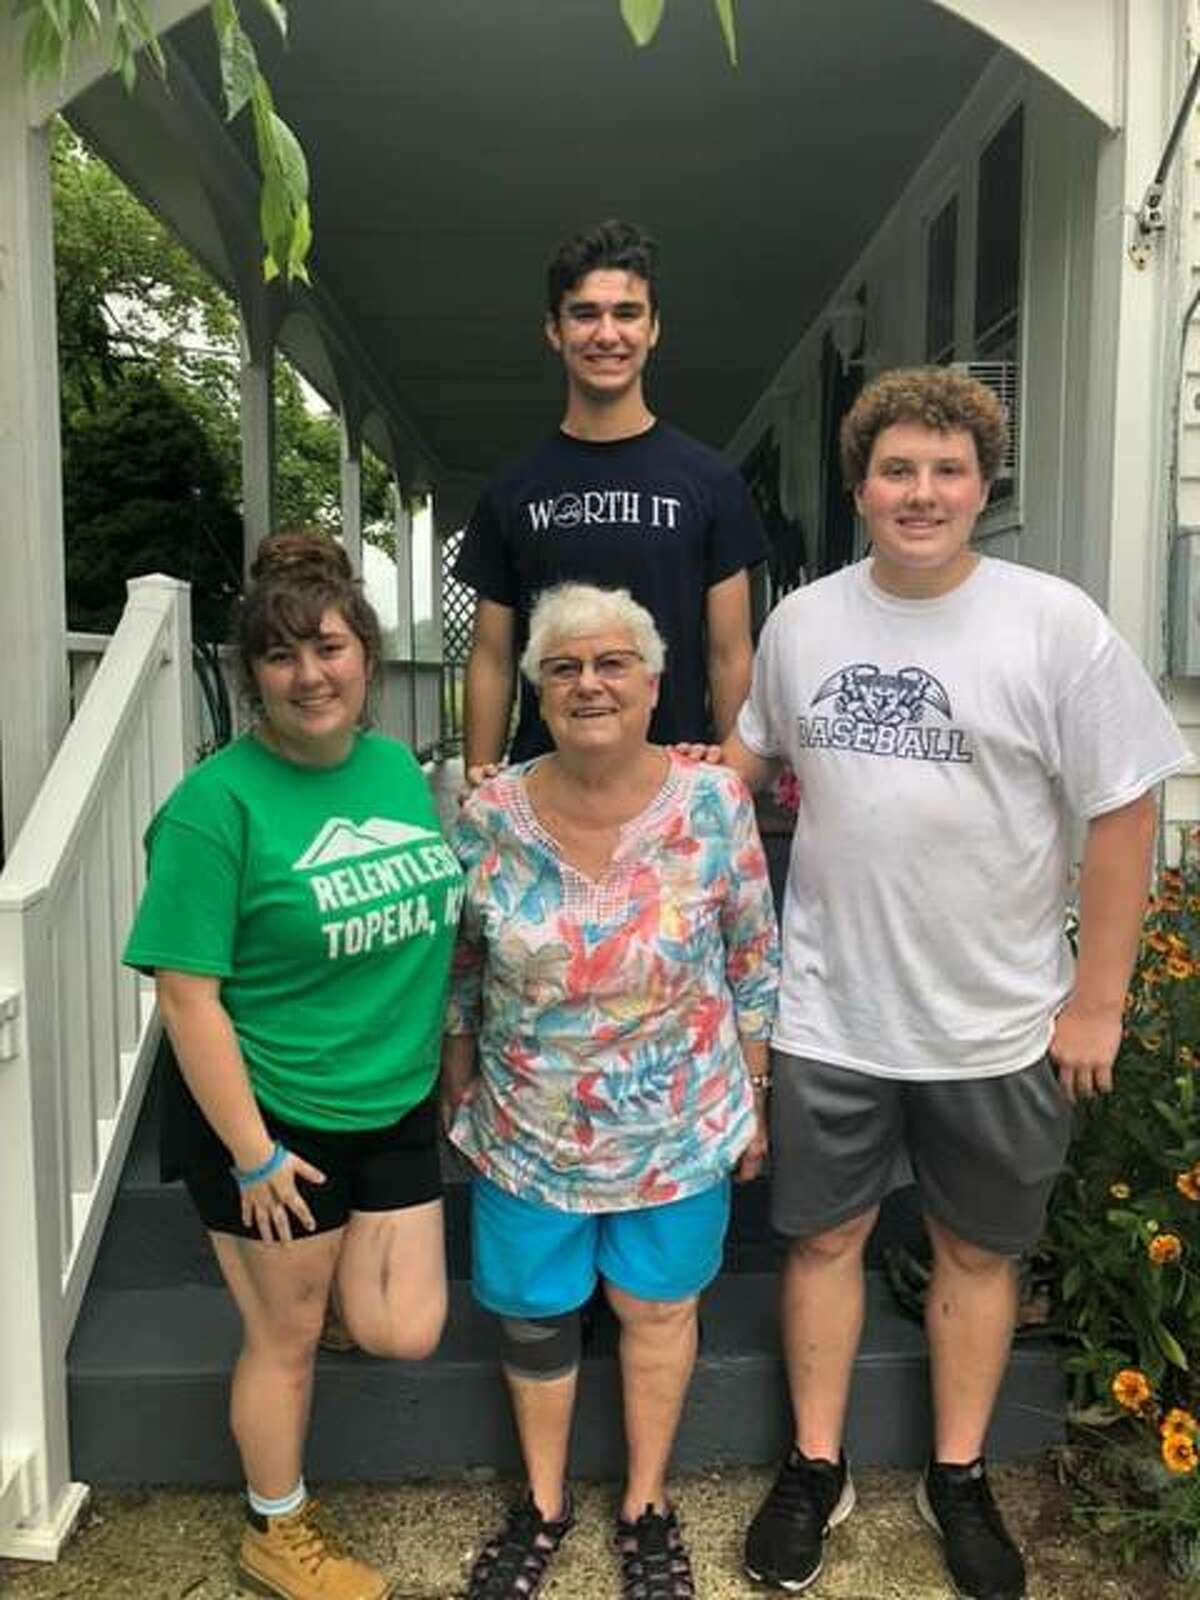 Students and chaperones were sent in crews to different locations throughout the area and assigned tasks such as painting, cleaning, building porches and making repairs around each house.